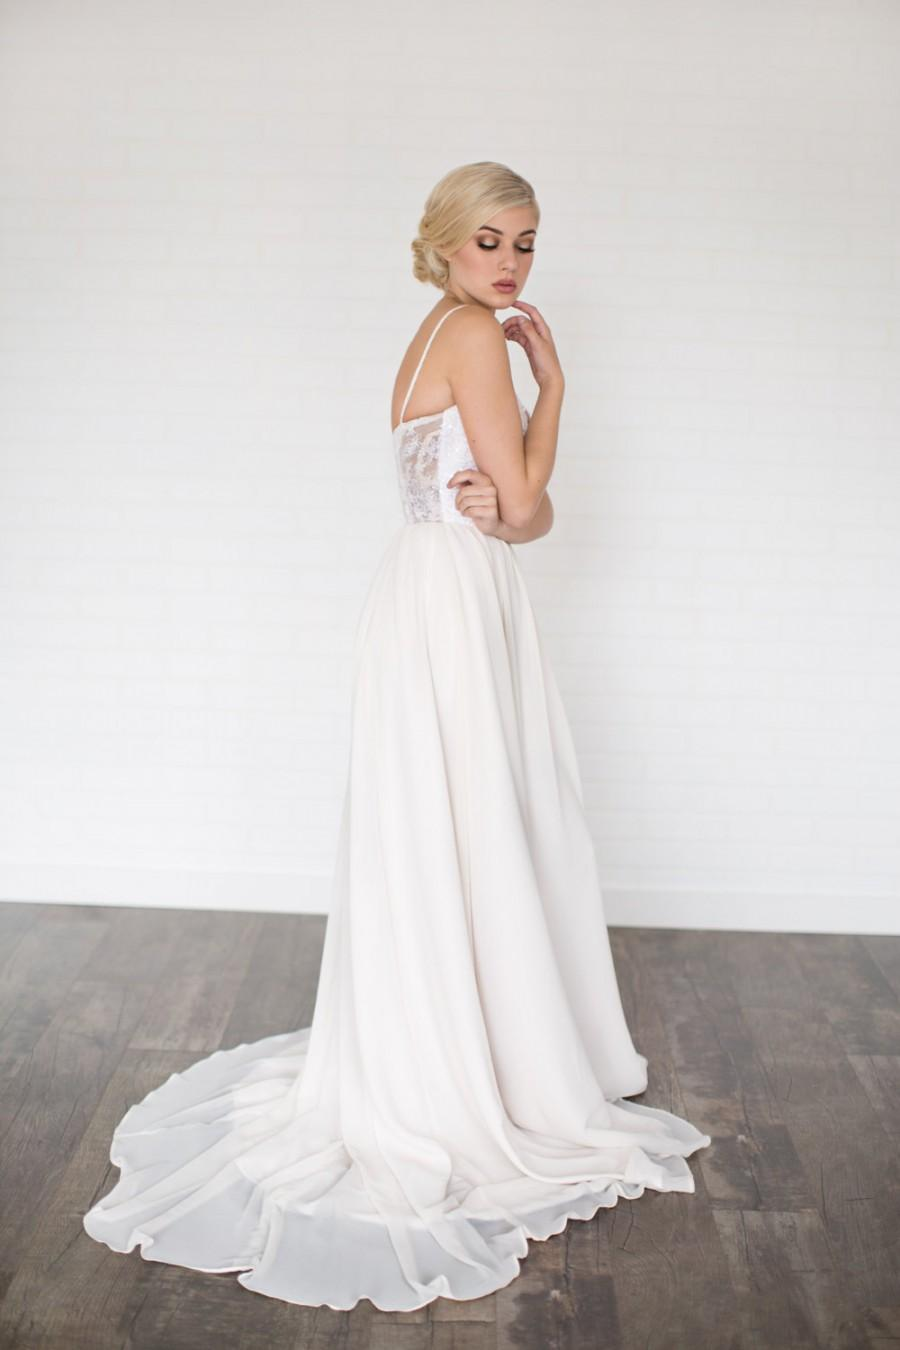 Düğün - Daze Wedding Dress //Modern Boho Chiffon Wedding Dress / Sequin Sweet Heart Neckline with Illusion Lace Back/ Gathered Chiffon Flowing Skirt